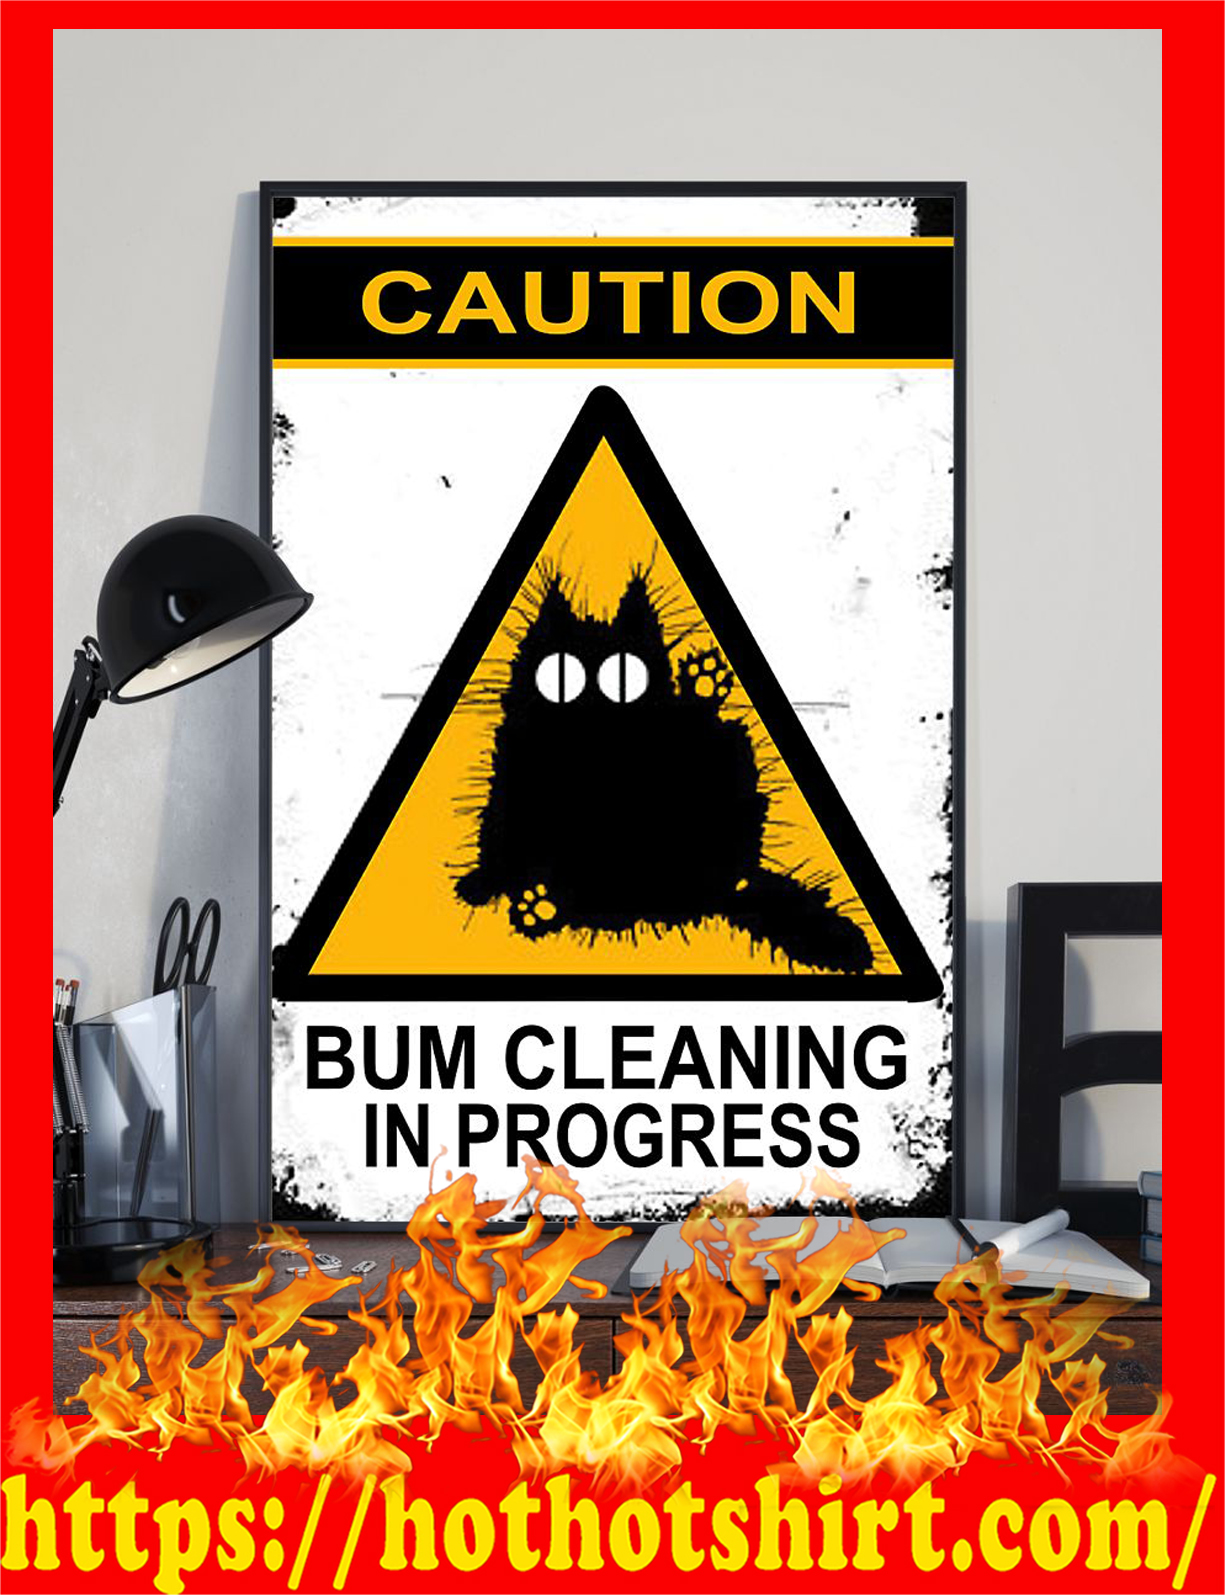 Caution bum cleaning in progress poster - Pic 1